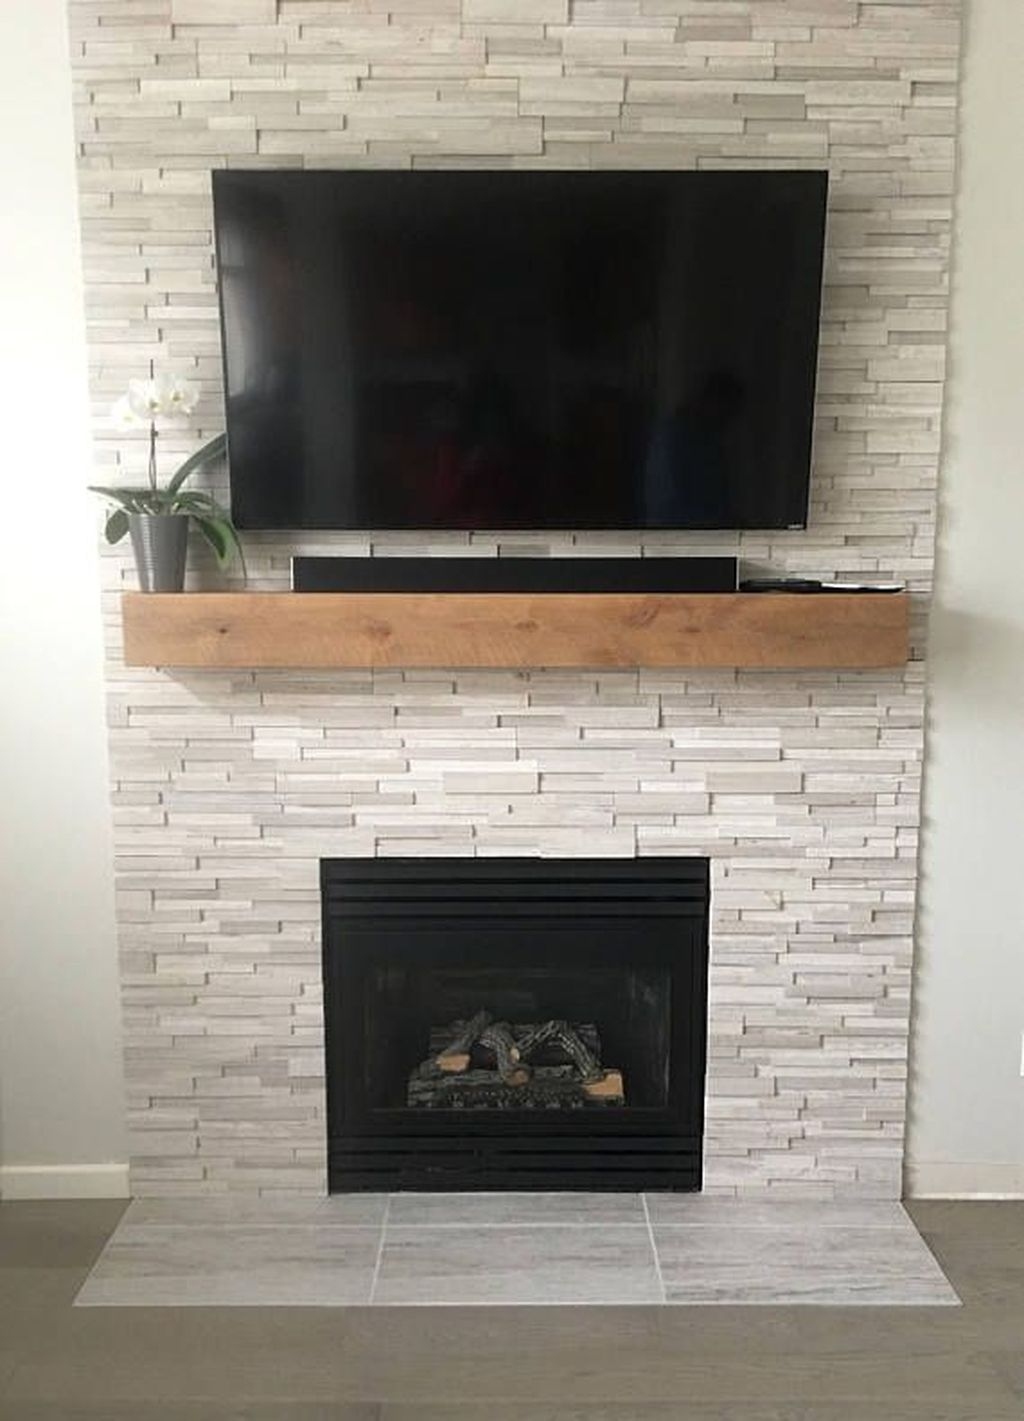 Awesome Fireplace Design Ideas For Small Houses 12